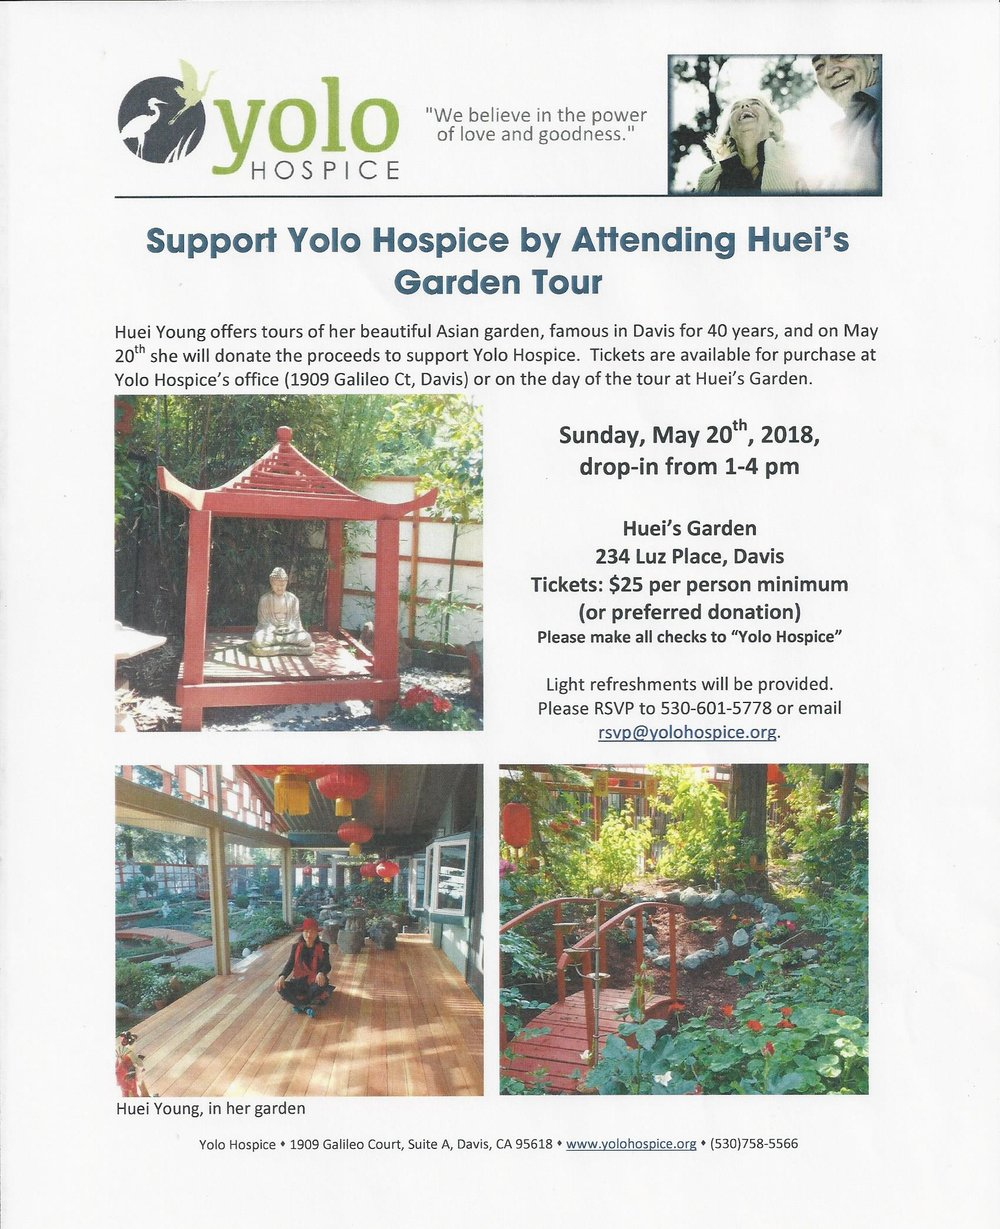 https://www.davisenterprise.com/community/asian-garden-tour-to-support-yolo-hospice/